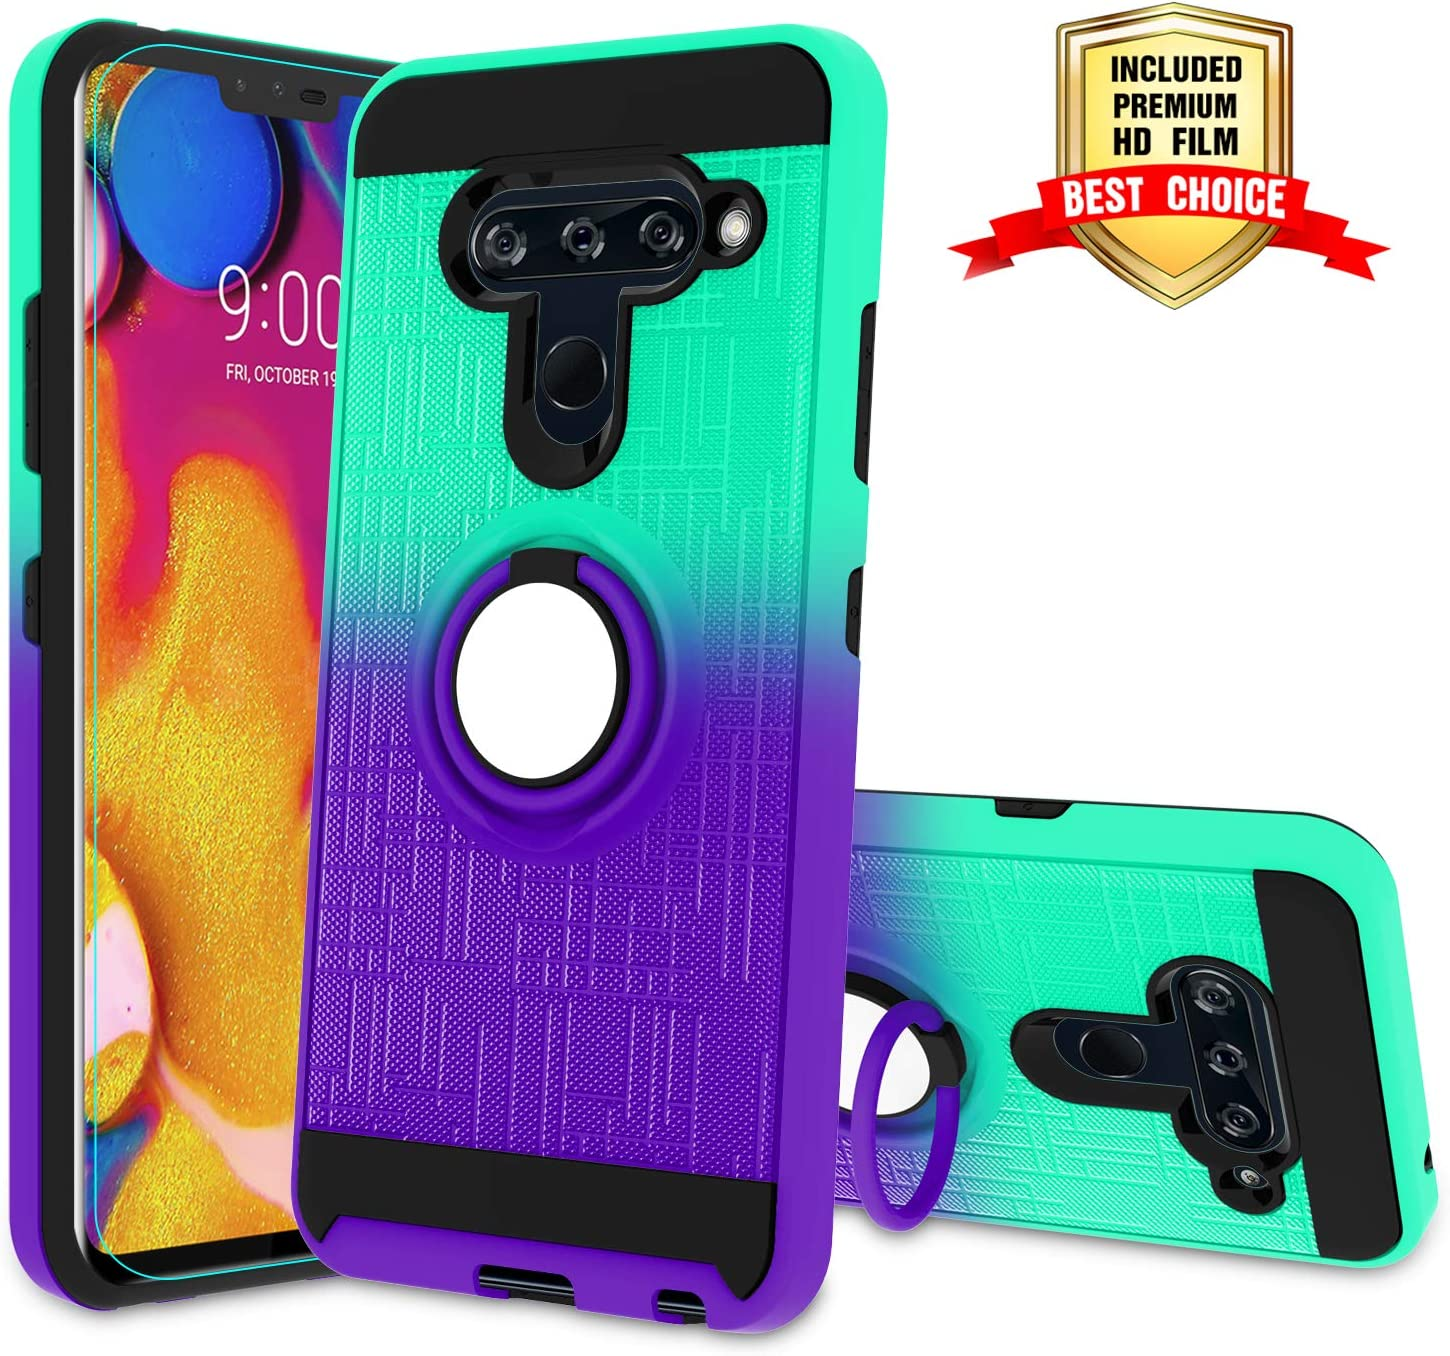 LG V40 Case, LG V40 ThinQ Phone Case with HD Screen Protector,Atump 360 Degree Rotating Ring Holder & Kickstand Bracket Dual Layers Cover Phone Case for LG V40 Mint/Purple